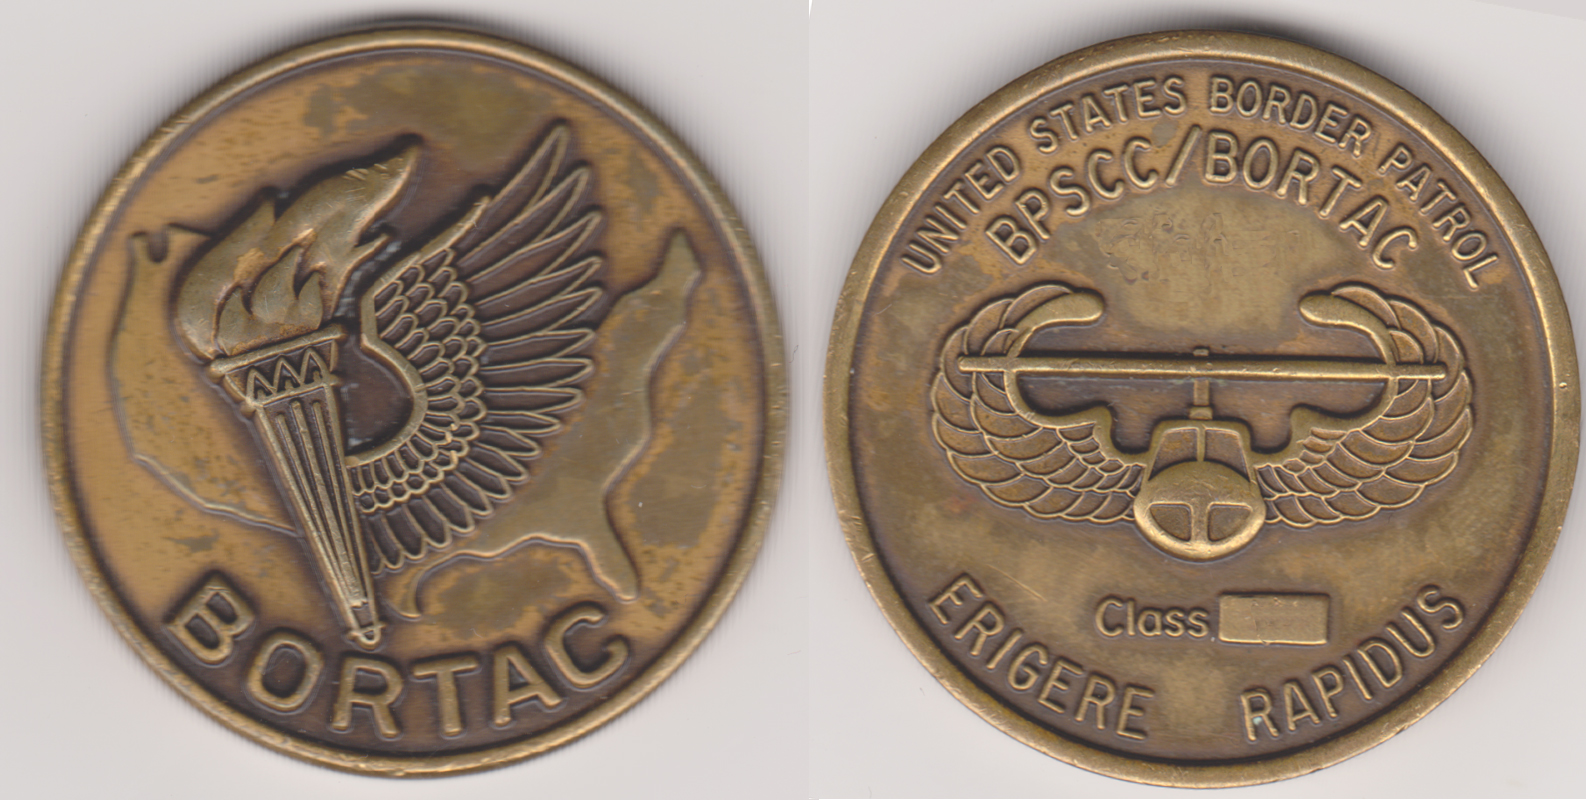 BORTAC CLASS coin (early version)